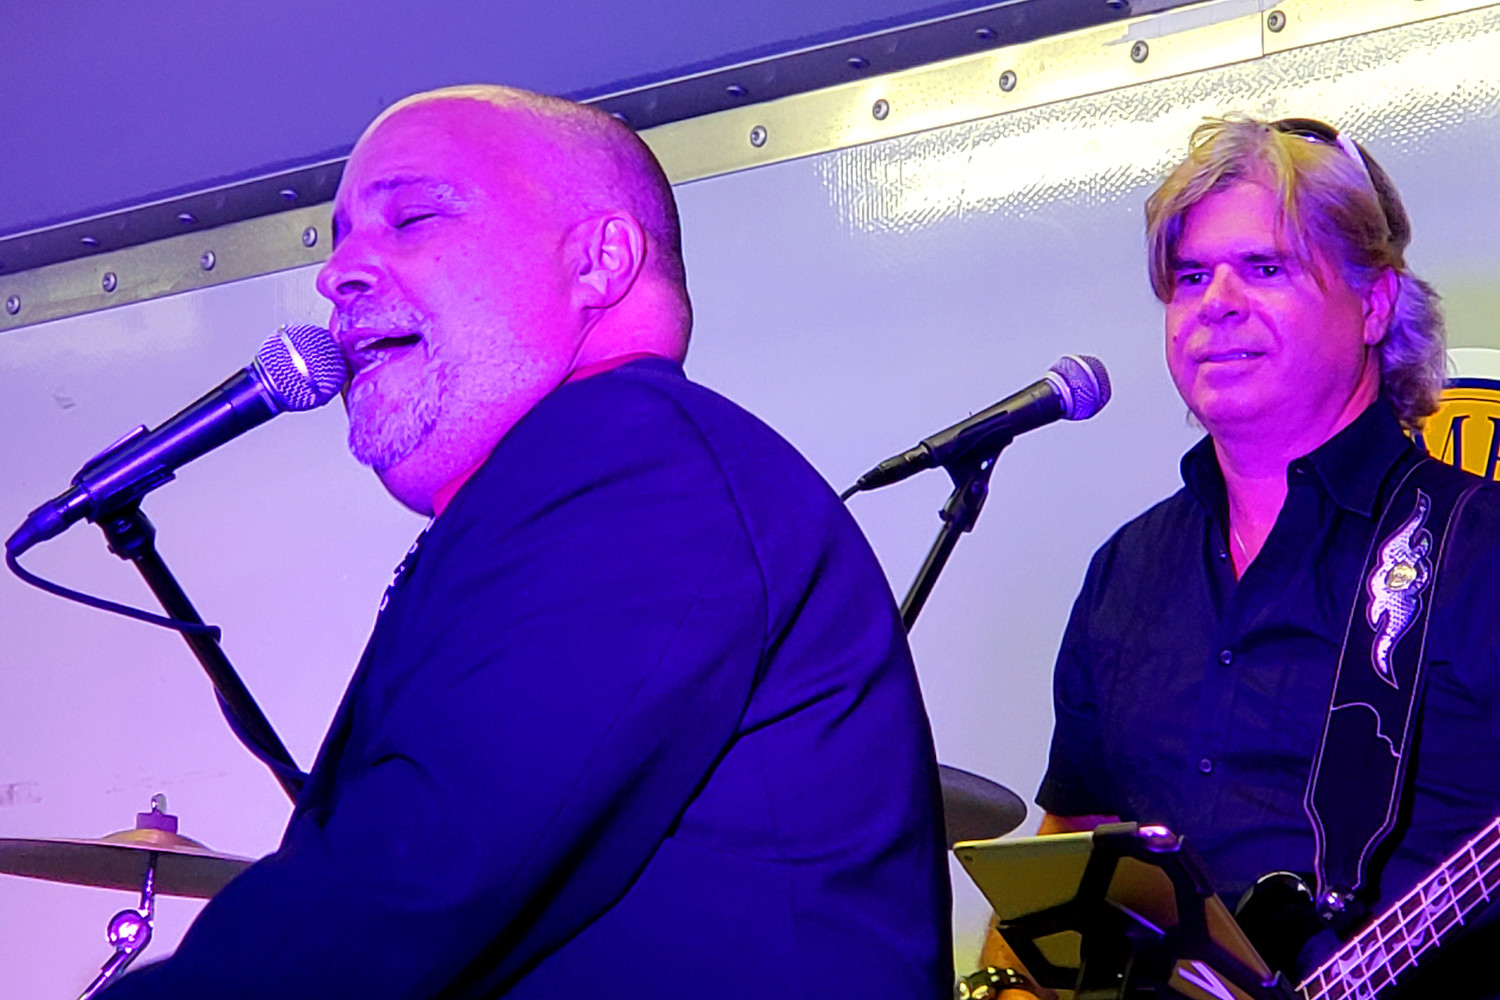 The Cold Spring Harbor Band, which includes vocalist Pat Farrell, left, and bass guitarist Kevin Hawkins, covered many of Billy Joel's hits to close out Malverne's annual Summer Entertainment Series at Westwood Park on Aug. 30.